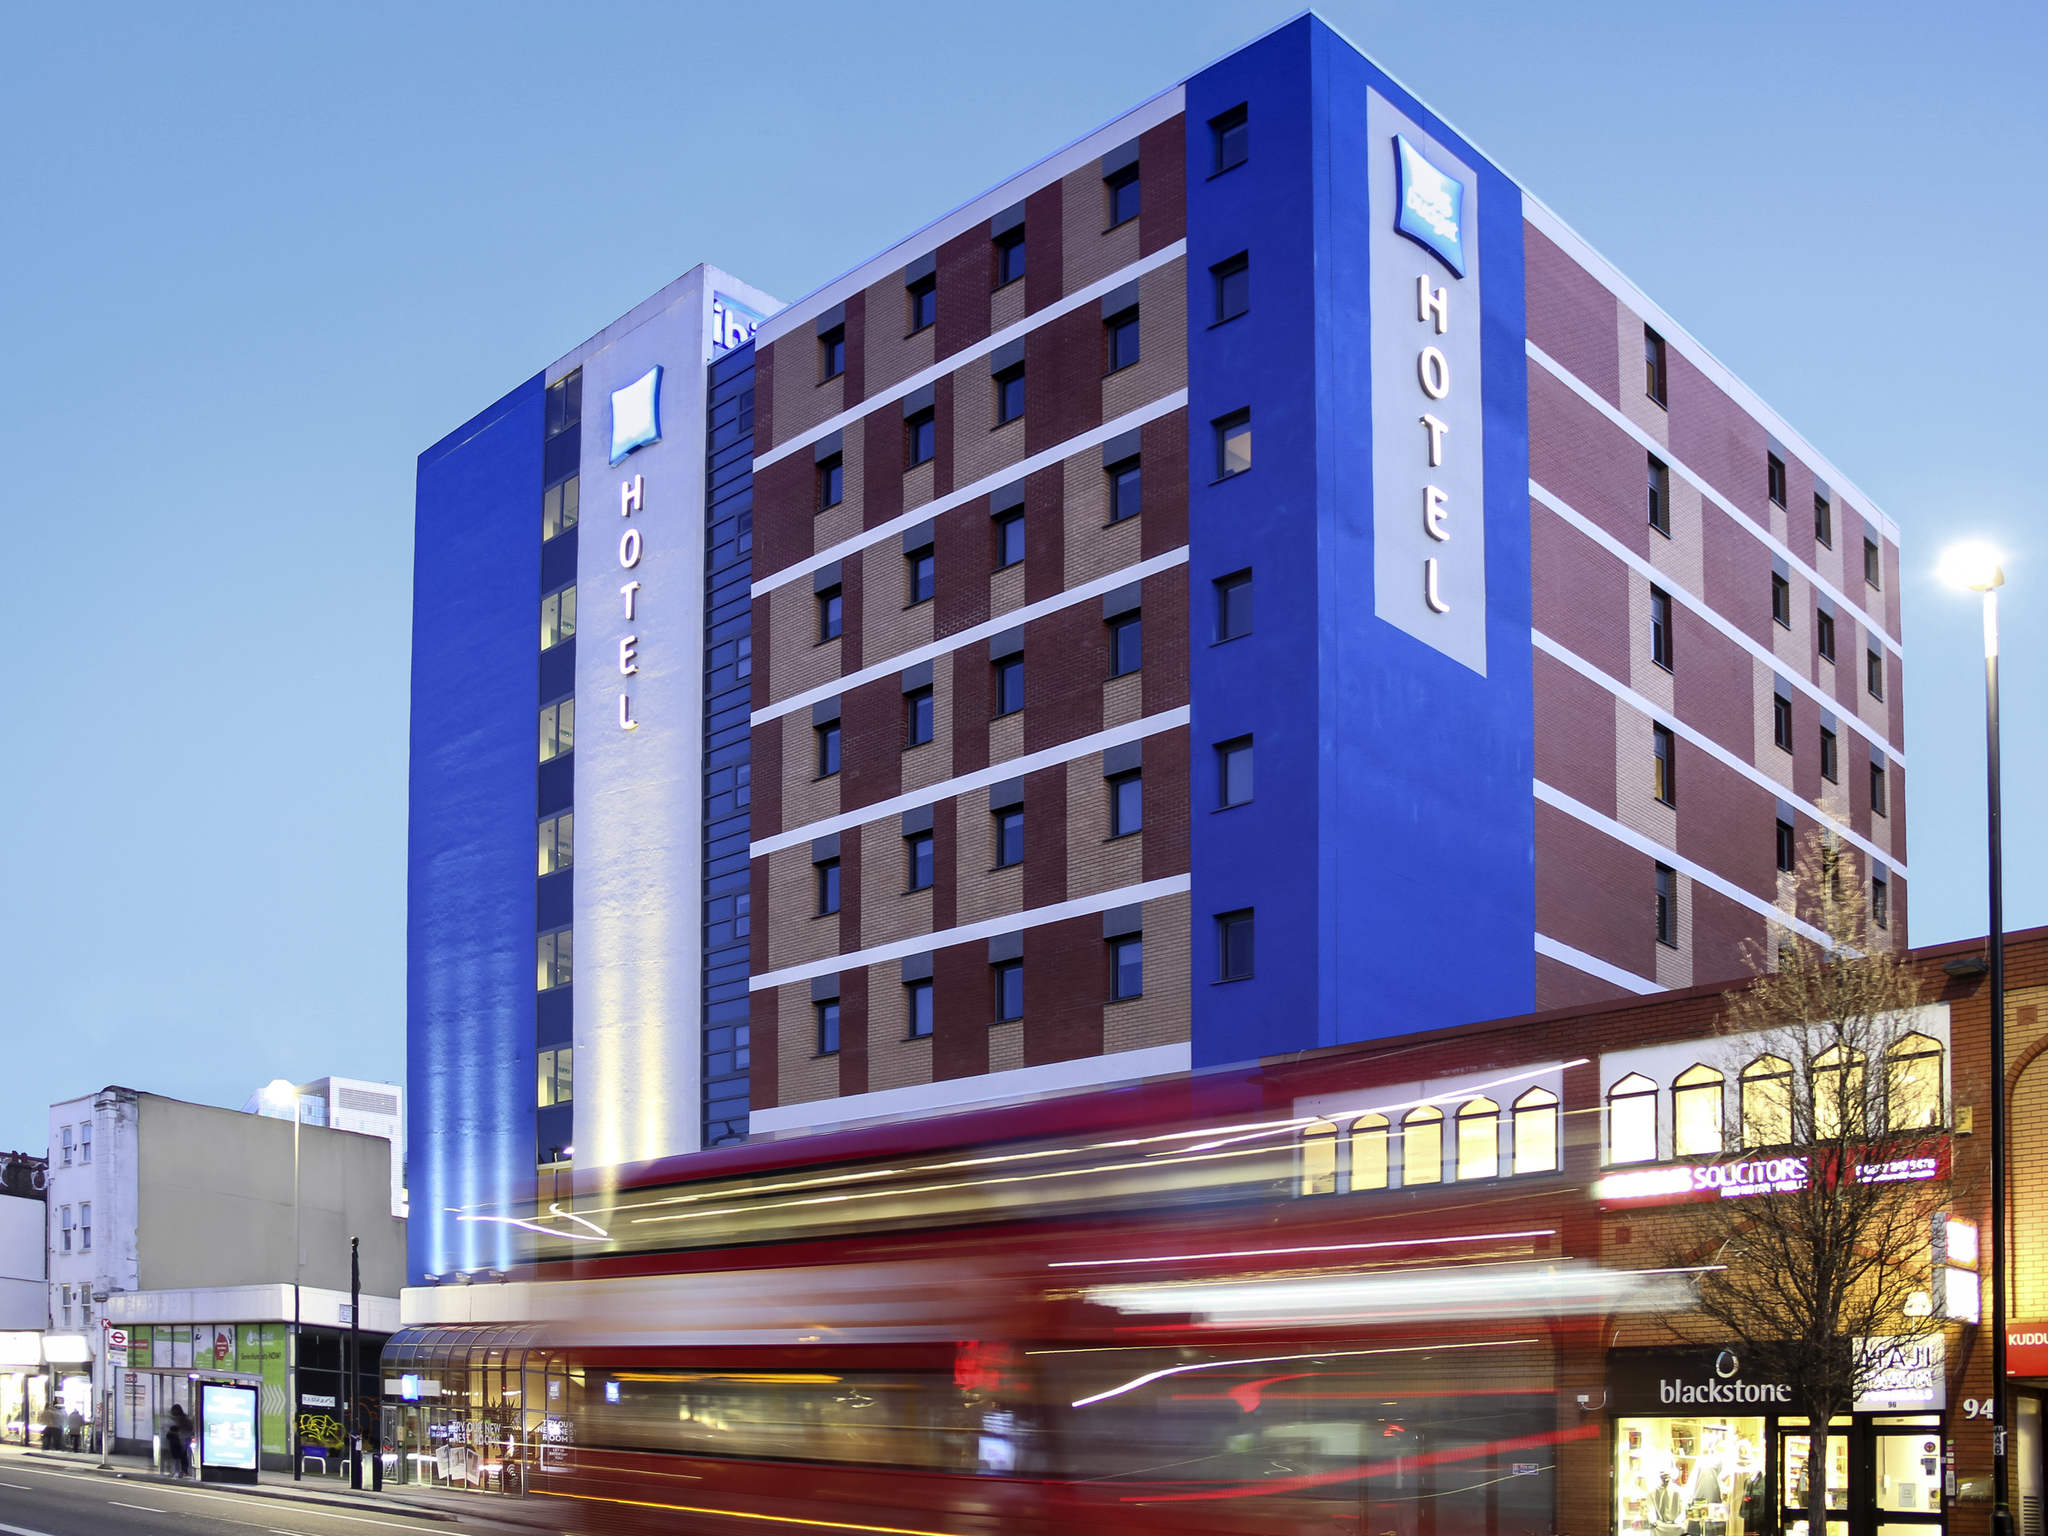 Hotel – Hotel ibis budget London Whitechapel - Brick Lane